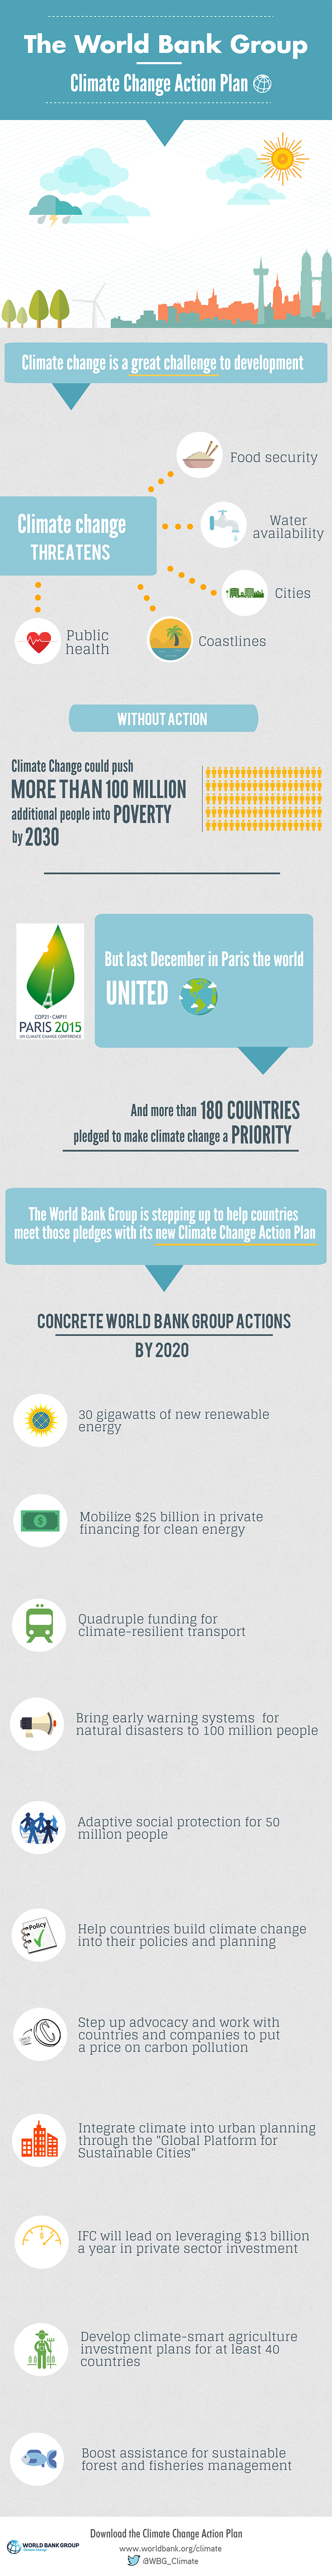 Climate-Action-Plan-World Bank-2016.png